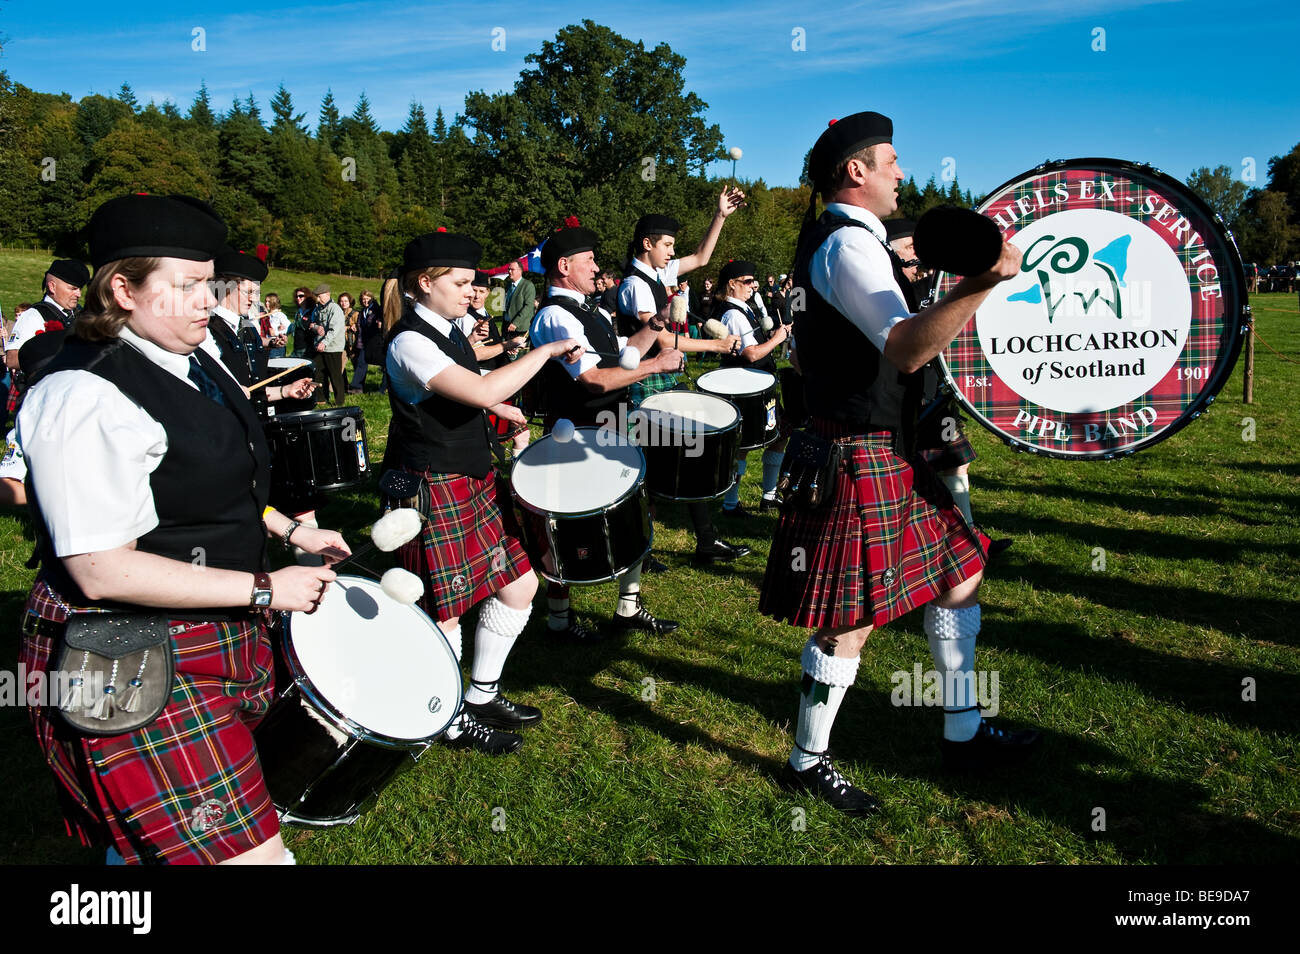 Massed pipes and drums at the 'Muster' - Homecoming 2009 Clan gathering for the Scott Clan at Bowhill House - Stock Image